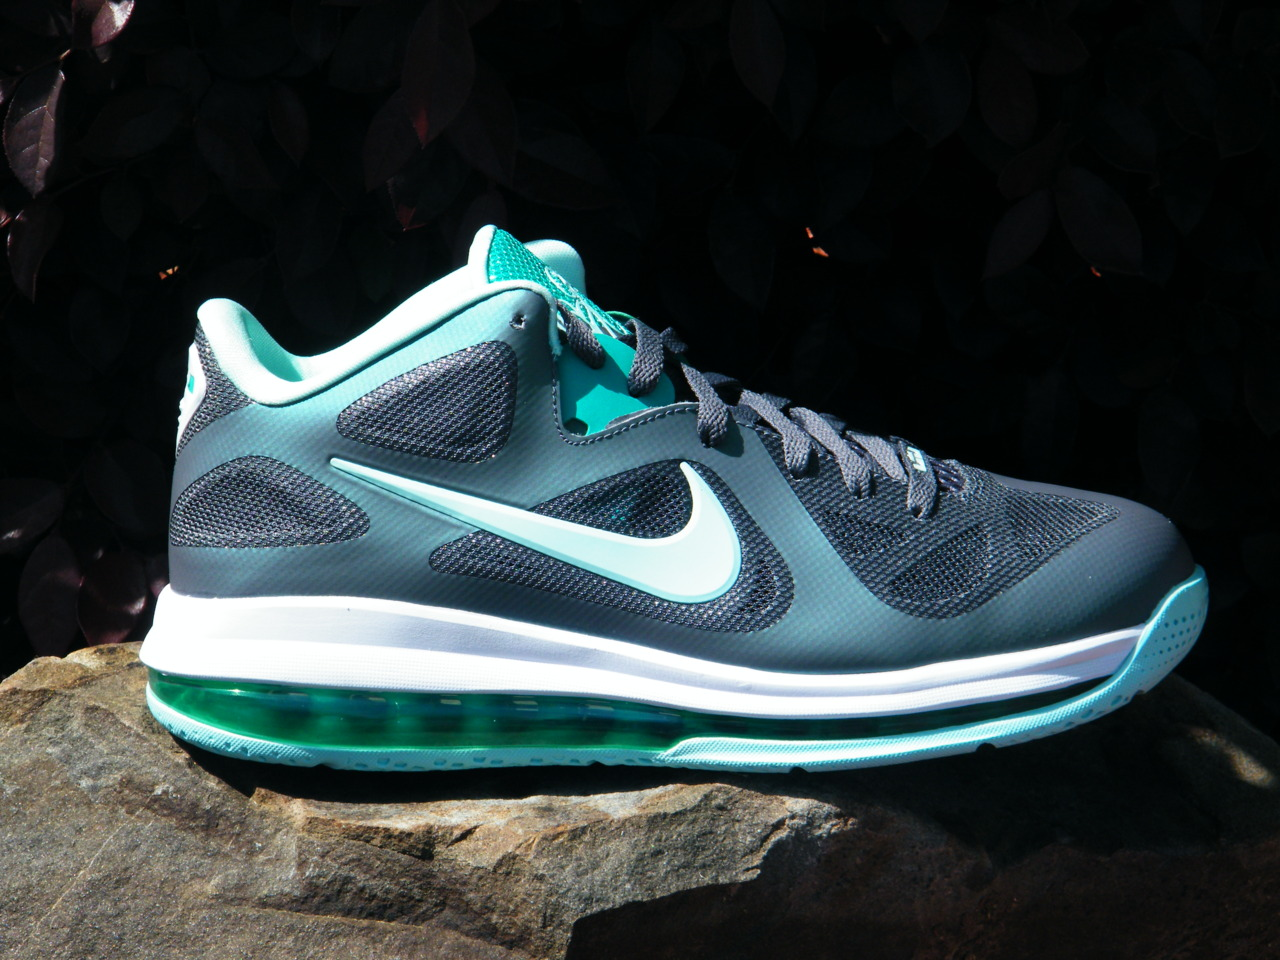 Nike LeBron 9 Low 'Easter' Arriving at Retailers